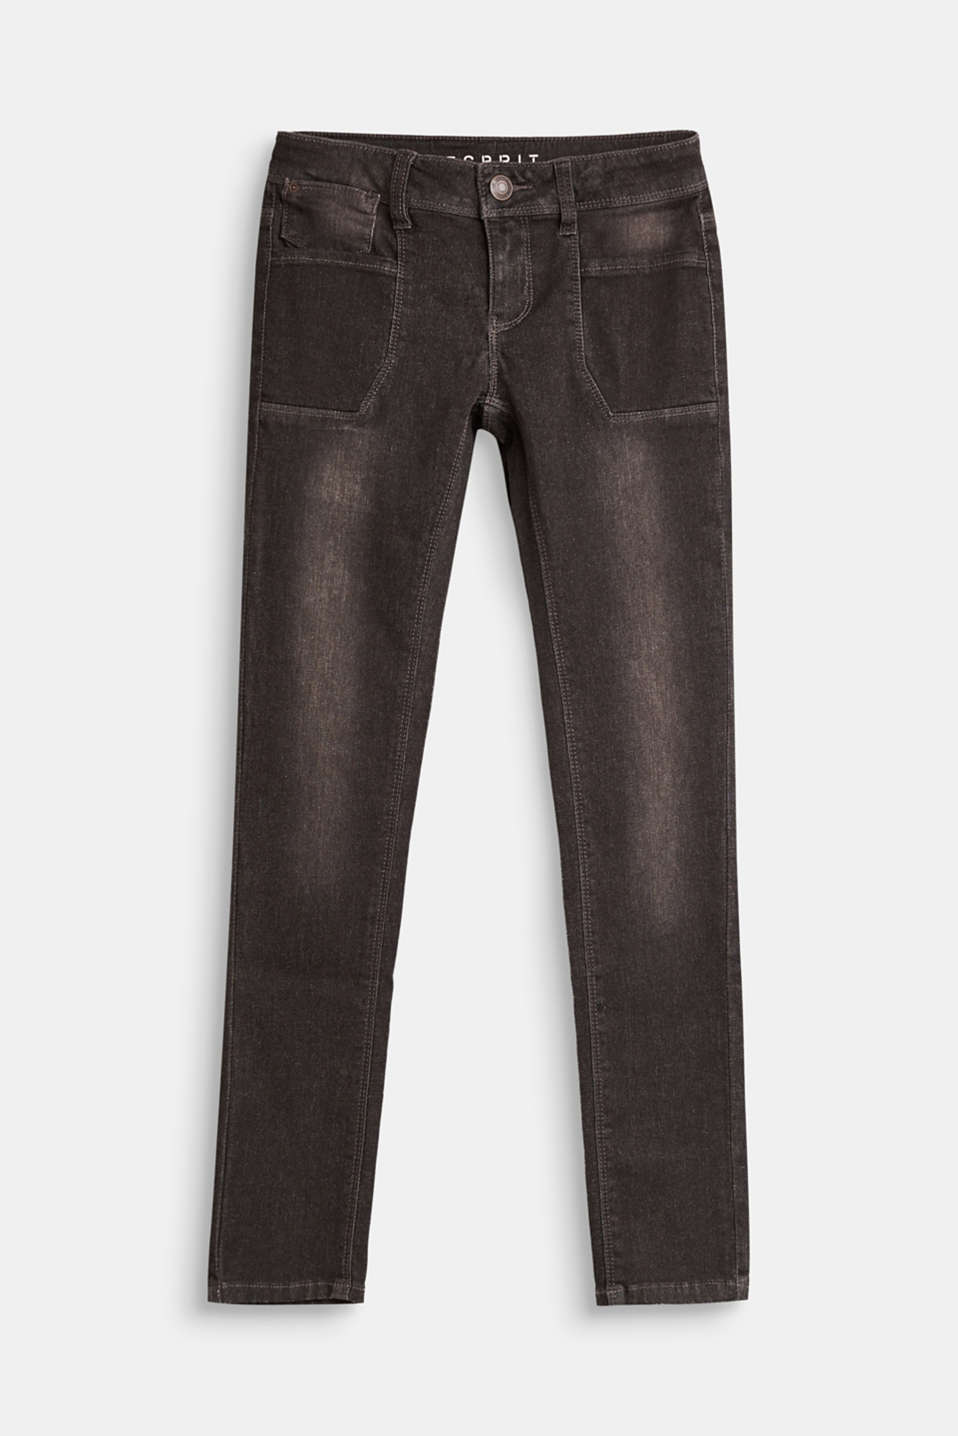 Esprit - Stretch jeans with pocket details